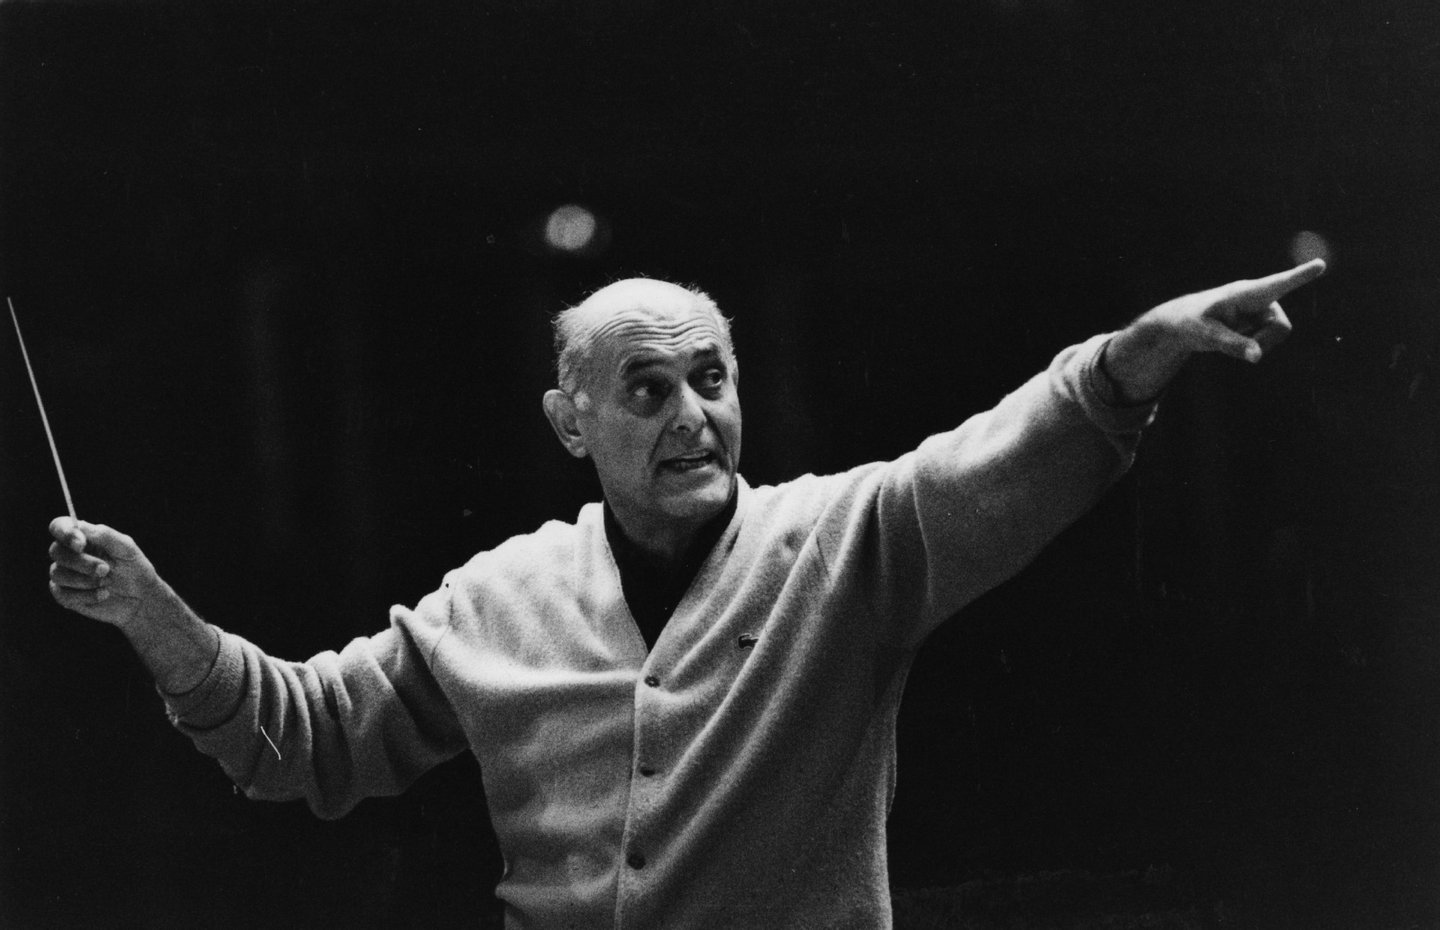 Hungarian-born Sir Georg Solti (1912 - 1997) conducting the Chicago Symphony Orchestra at the Albert Hall. Solti toured extensively with the CSO after his appointment as their conductor in 1969. Original Publication: People Disc - HL0236 (Photo by Evening Standard/Getty Images)